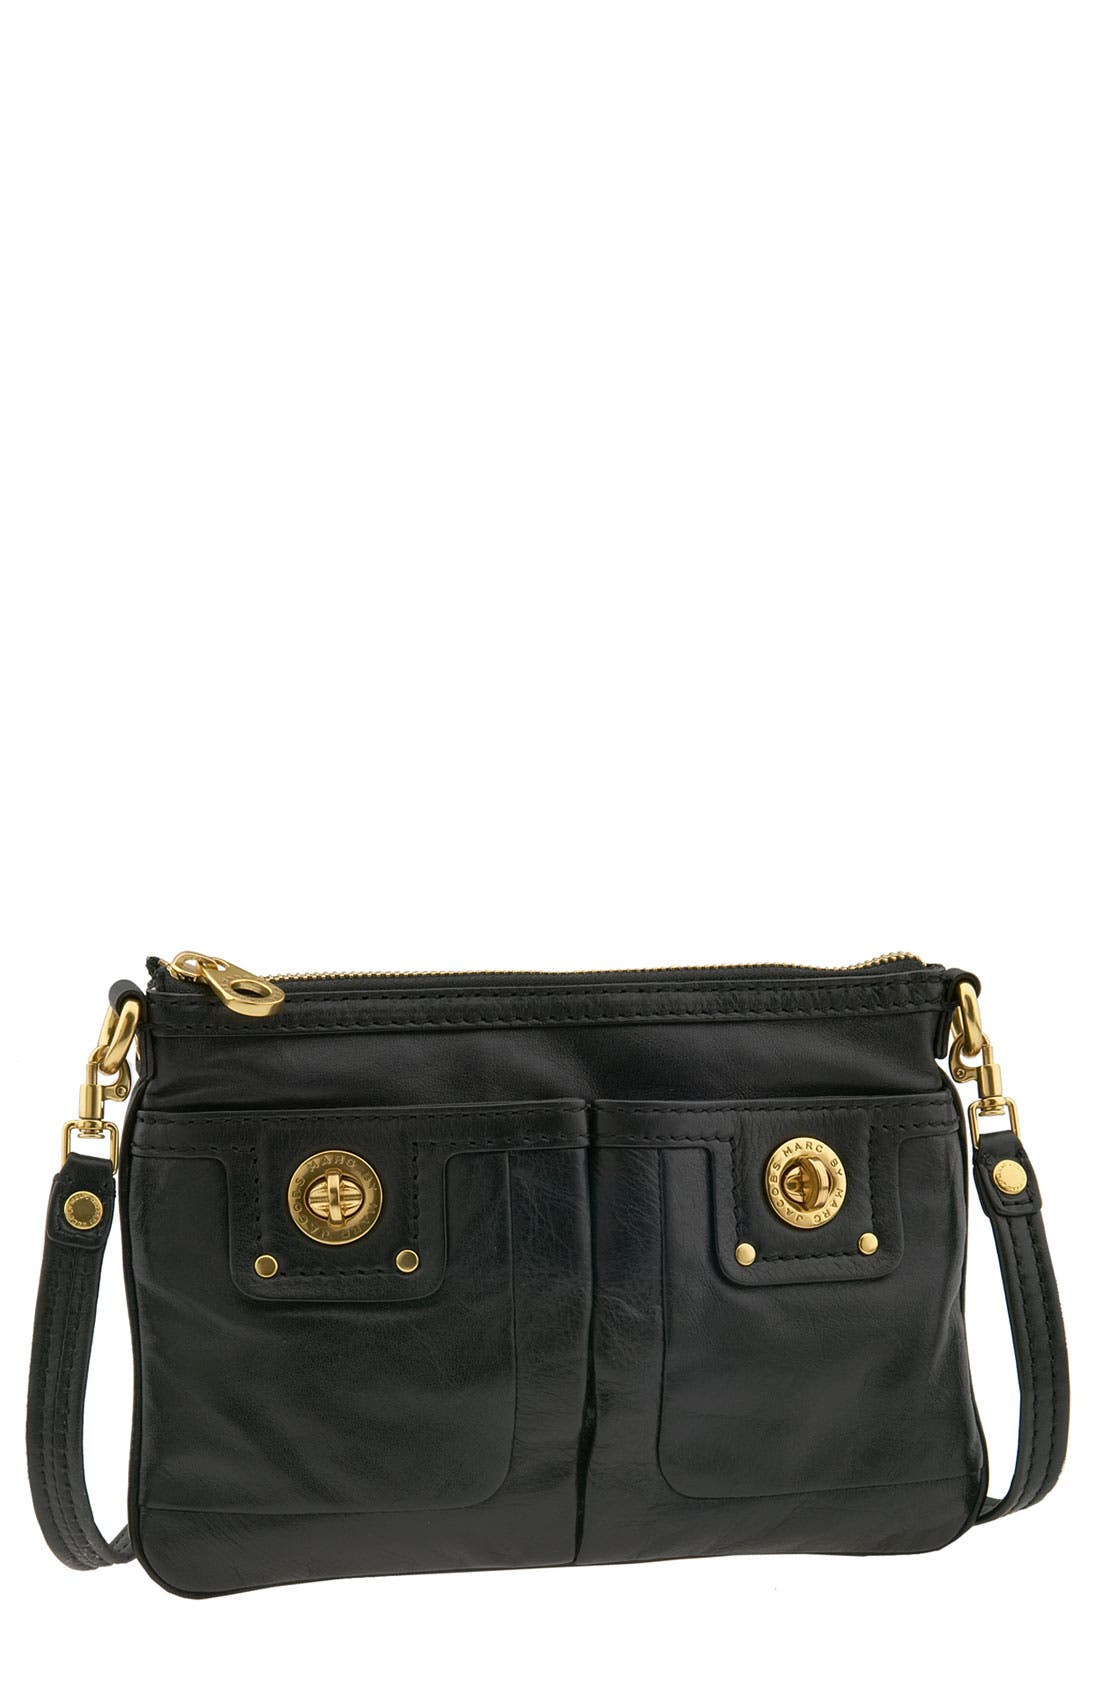 MARC JACOBS, MARC BY MARC JACOBS 'Percy' Turnlock Crossbody Bag, Main thumbnail 1, color, 001